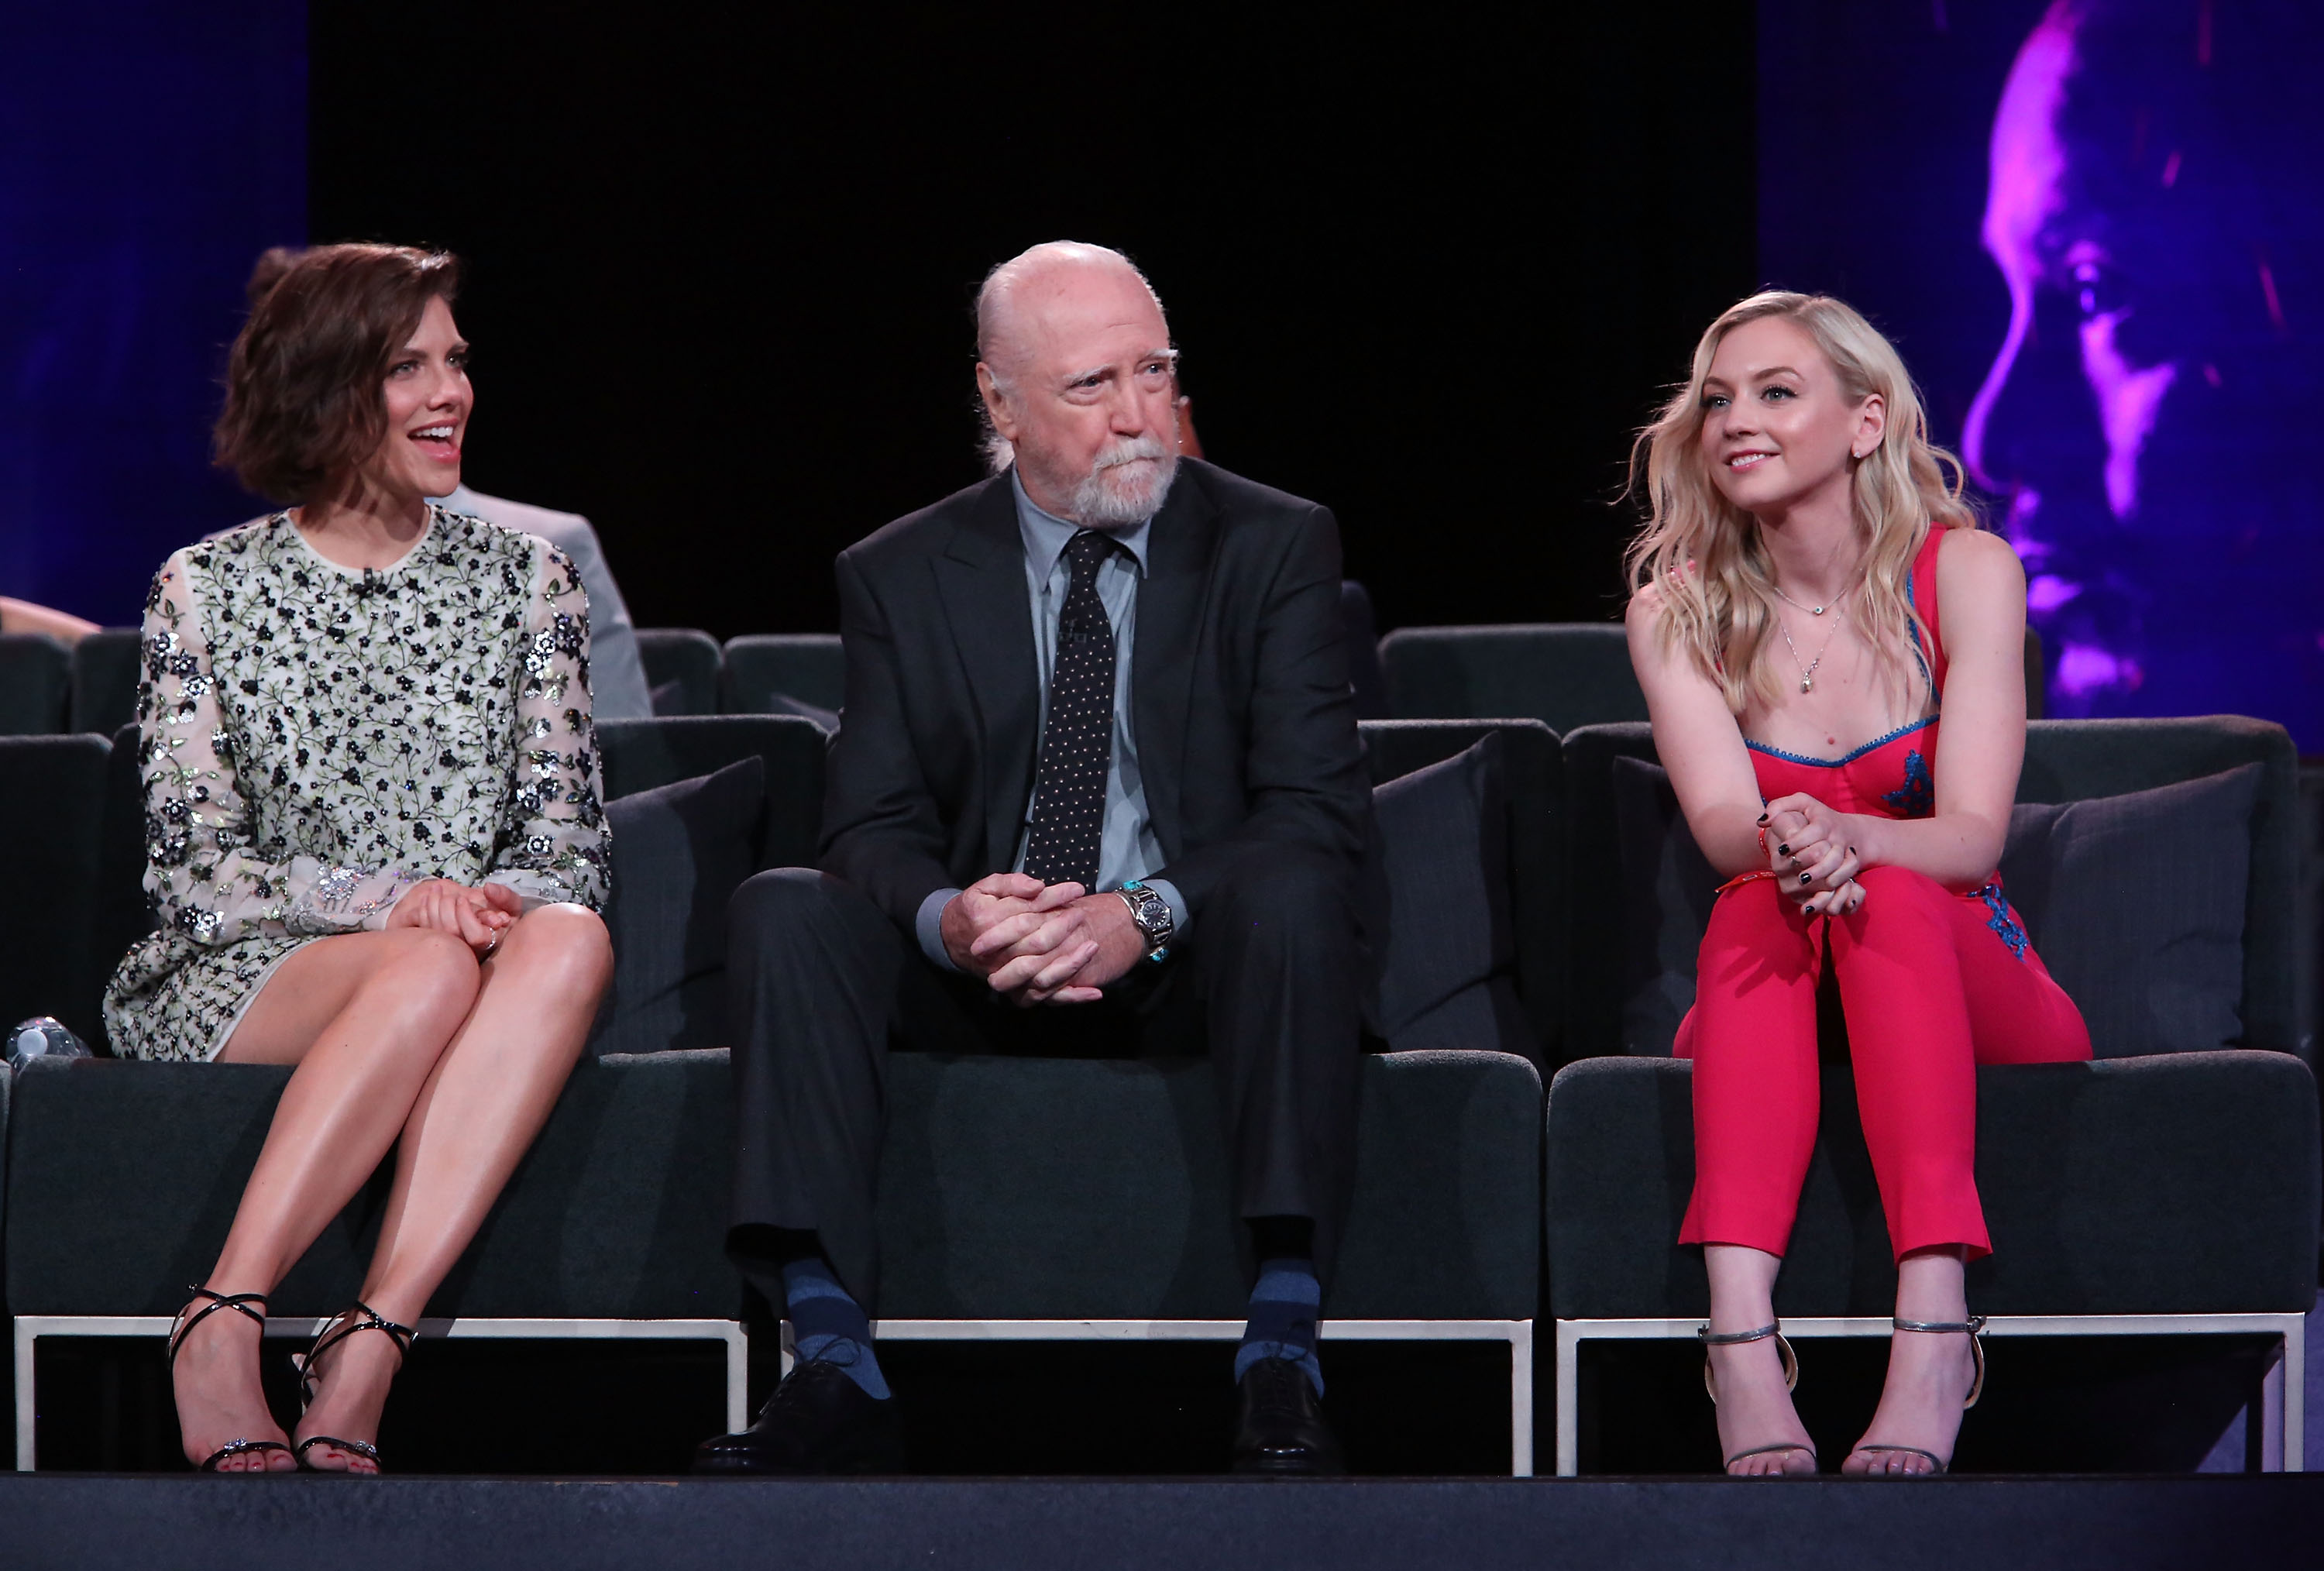 (L-R) Lauren Cohan, Scott Wilson and Emily Kinney speak onstage at The Walking Dead 100th Episode Premiere and Party on October 22, 2017 in Los Angeles. (Getty Images)